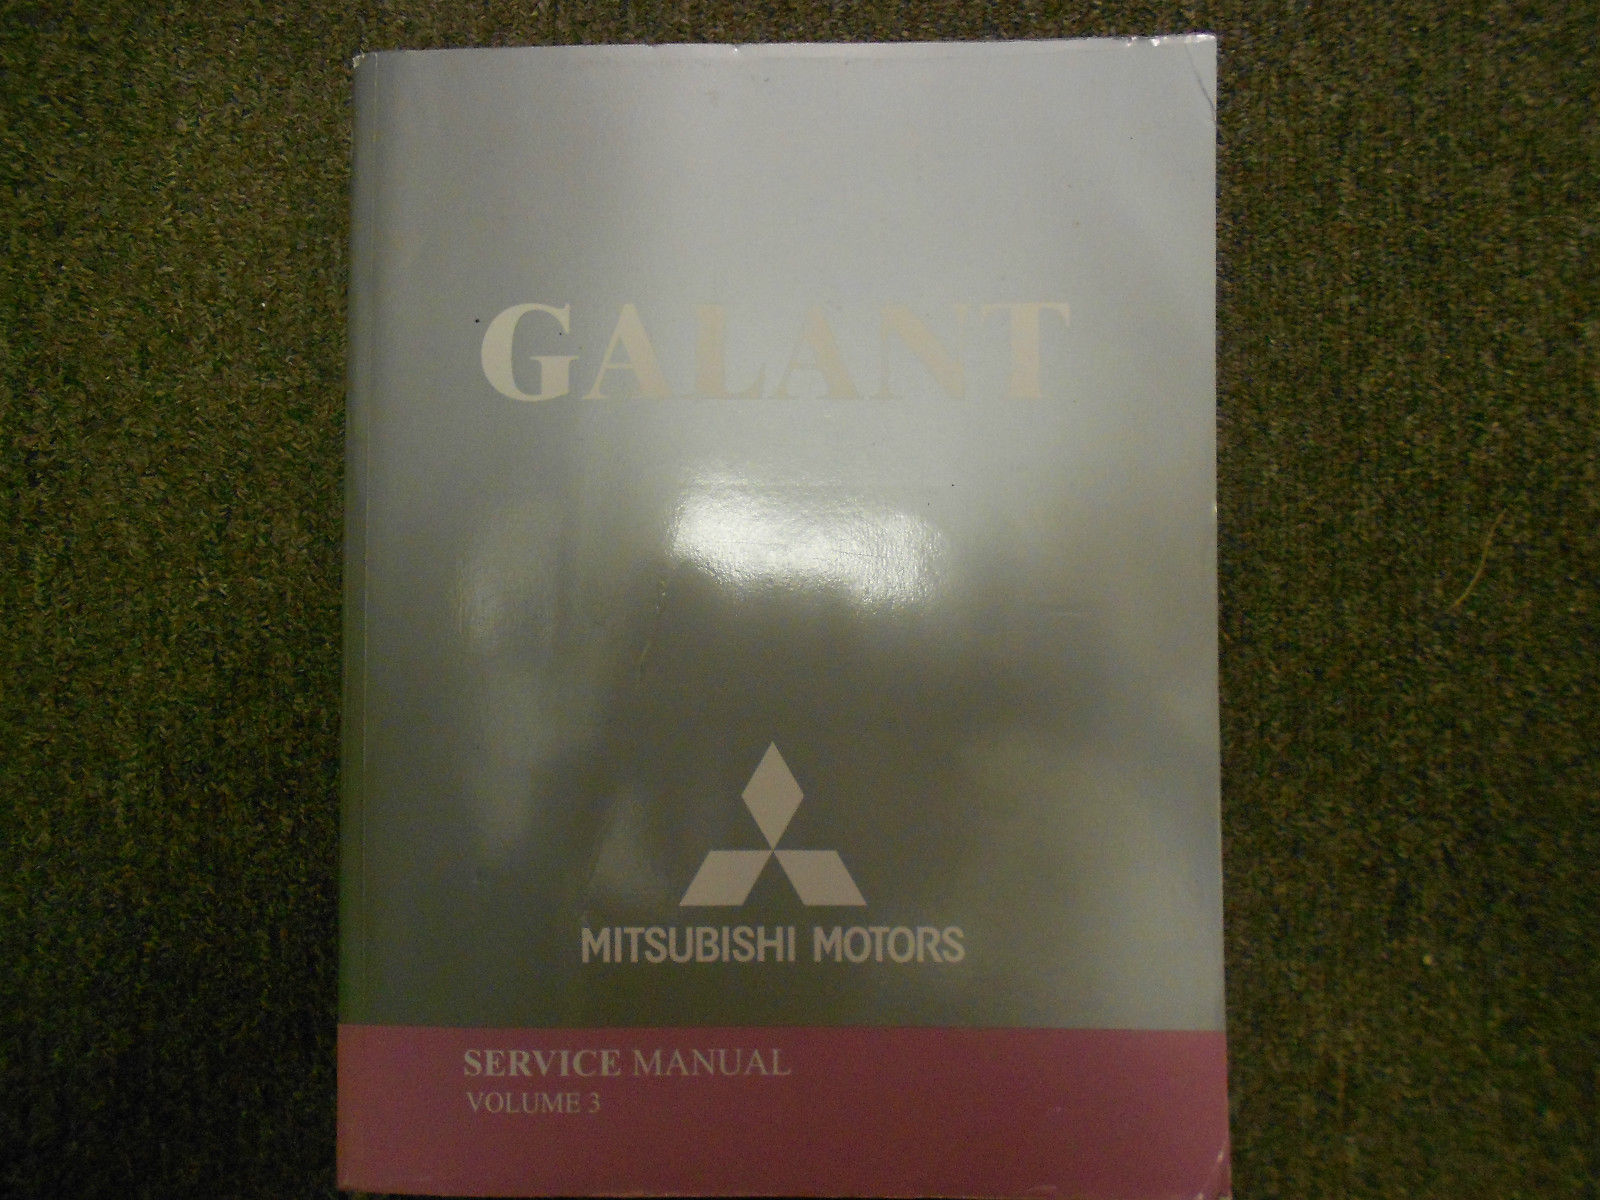 2004 MITSUBISHI Galant Service Repair Shop Manual VOL 3 OEM 04 FACTORY OEM 04